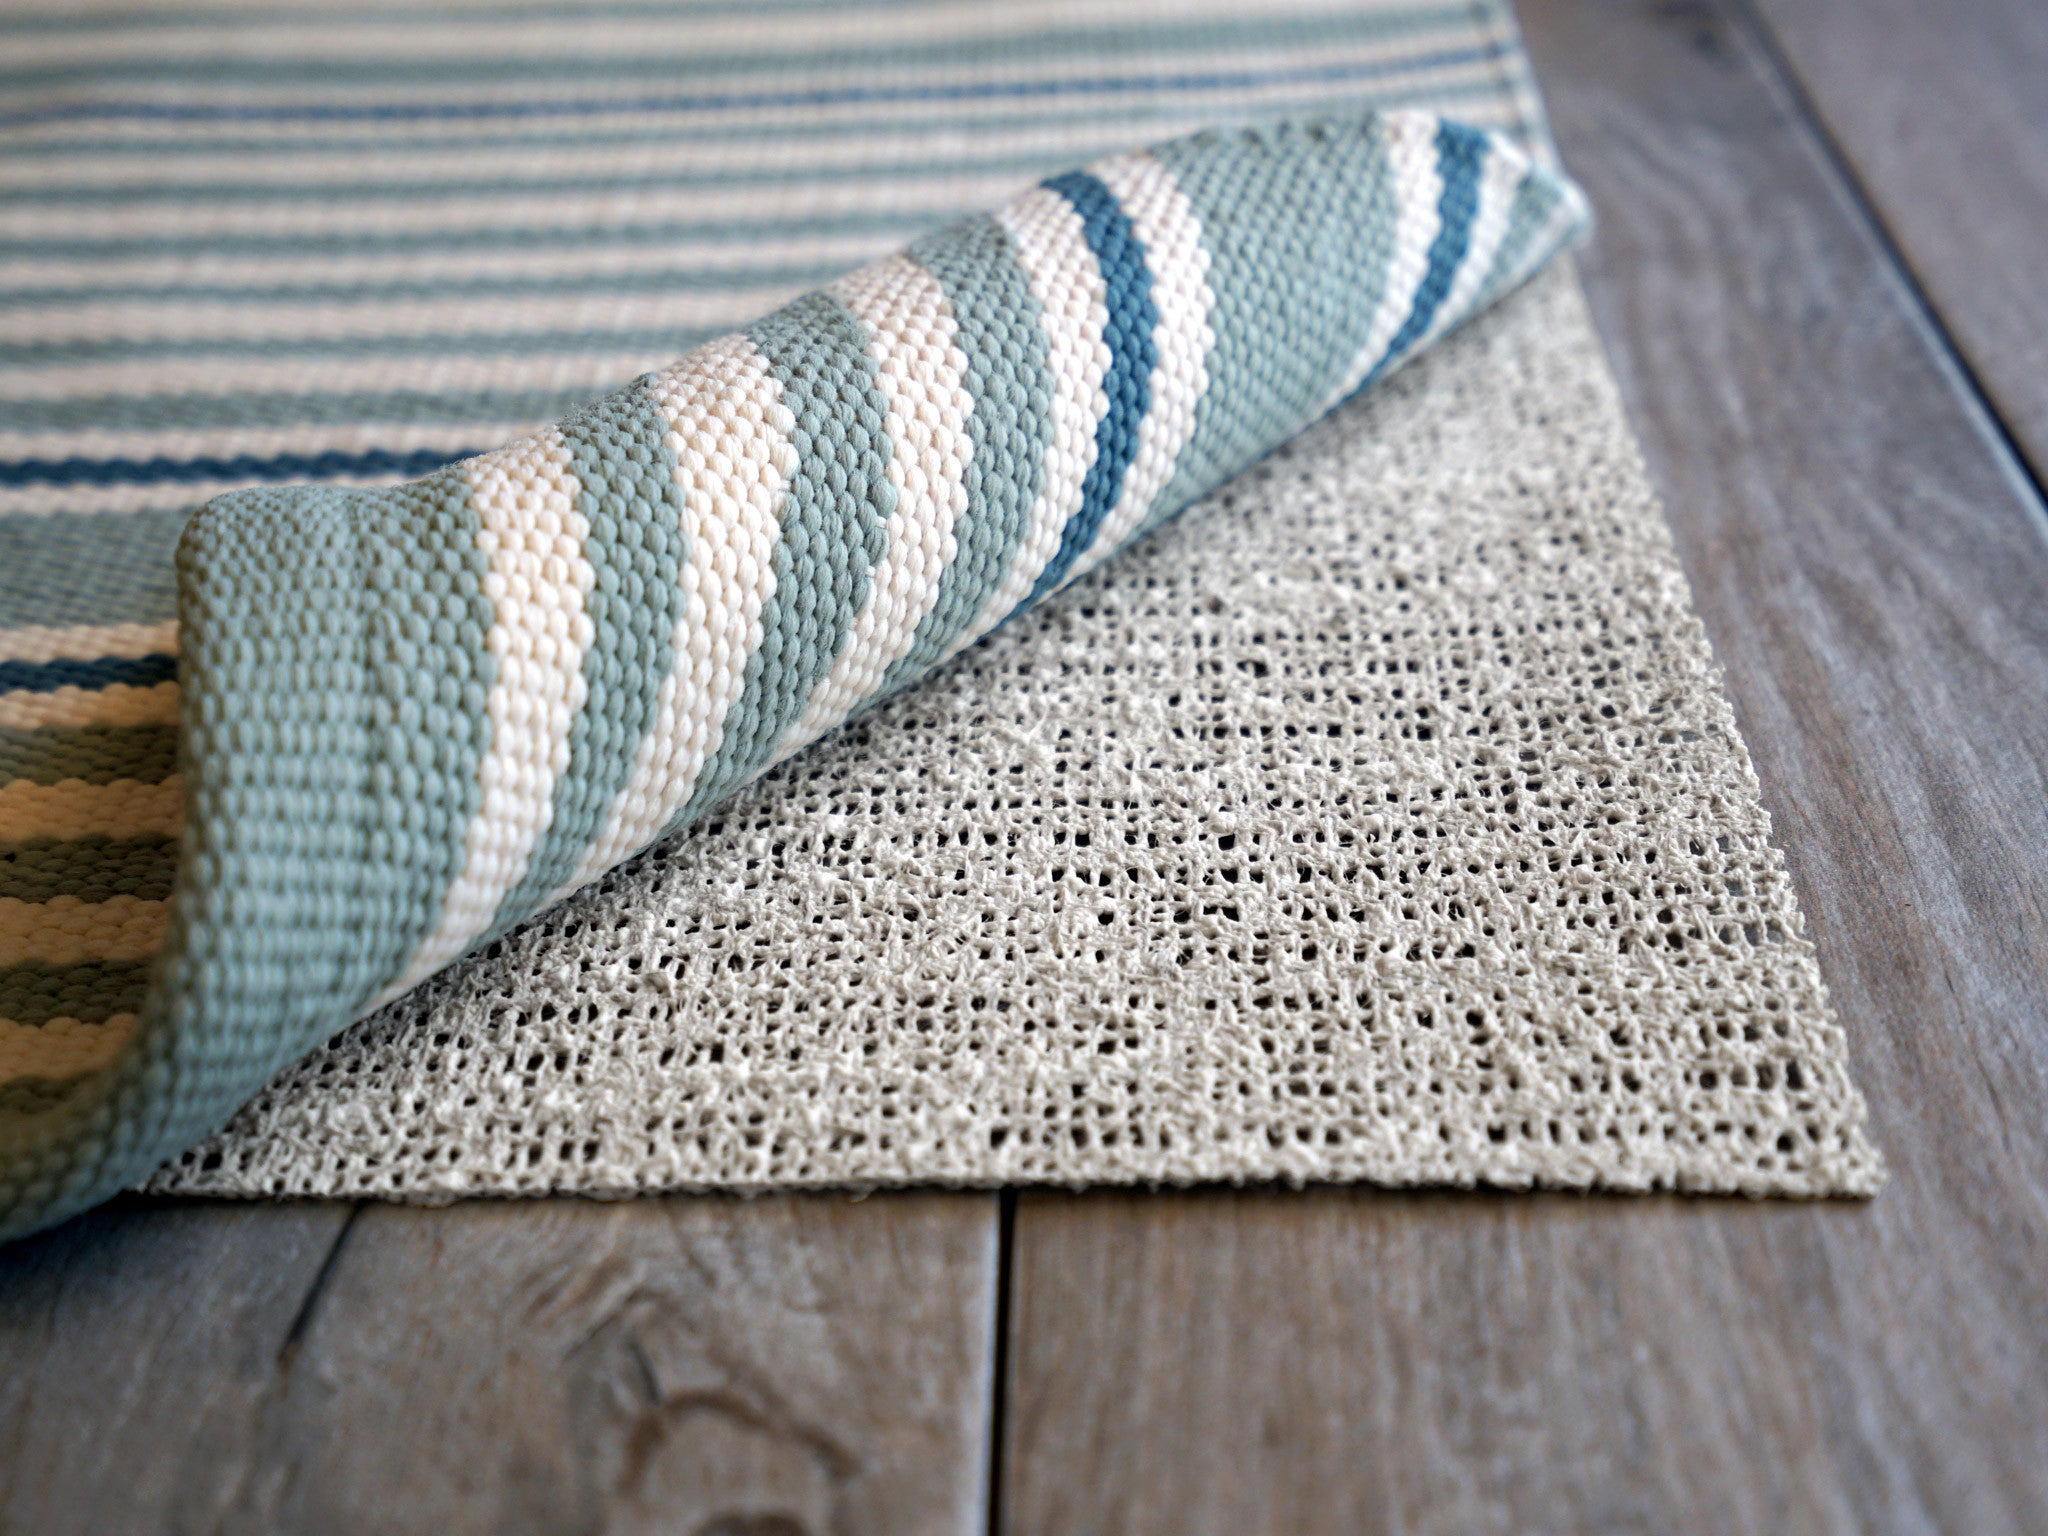 Nature's Grip Rug Pads for Laminate Floors